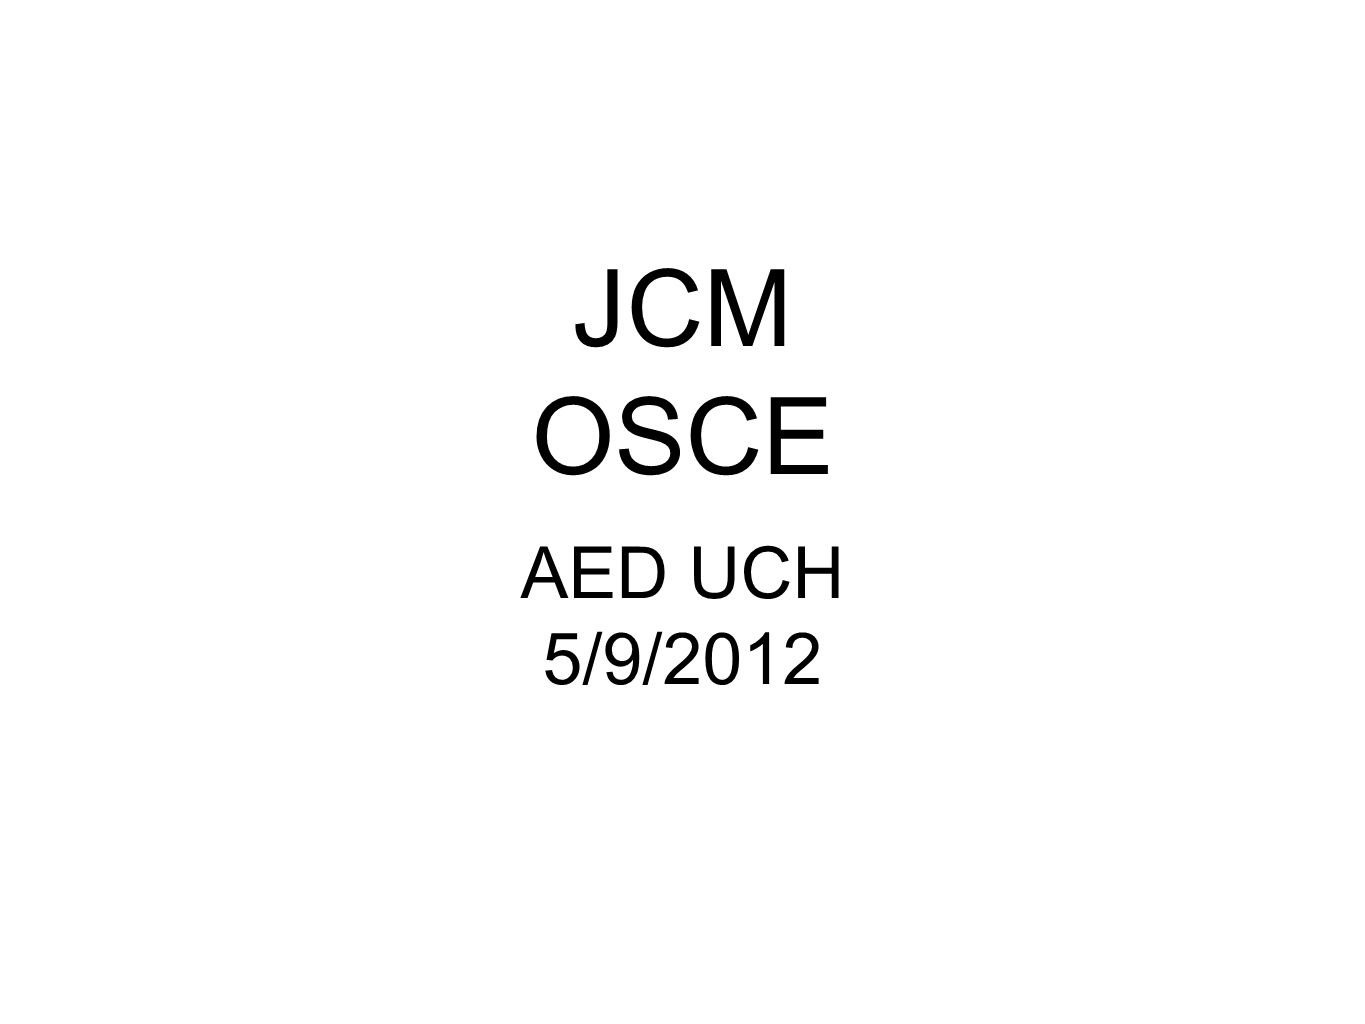 JCM OSCE AED UCH 5/9/2012